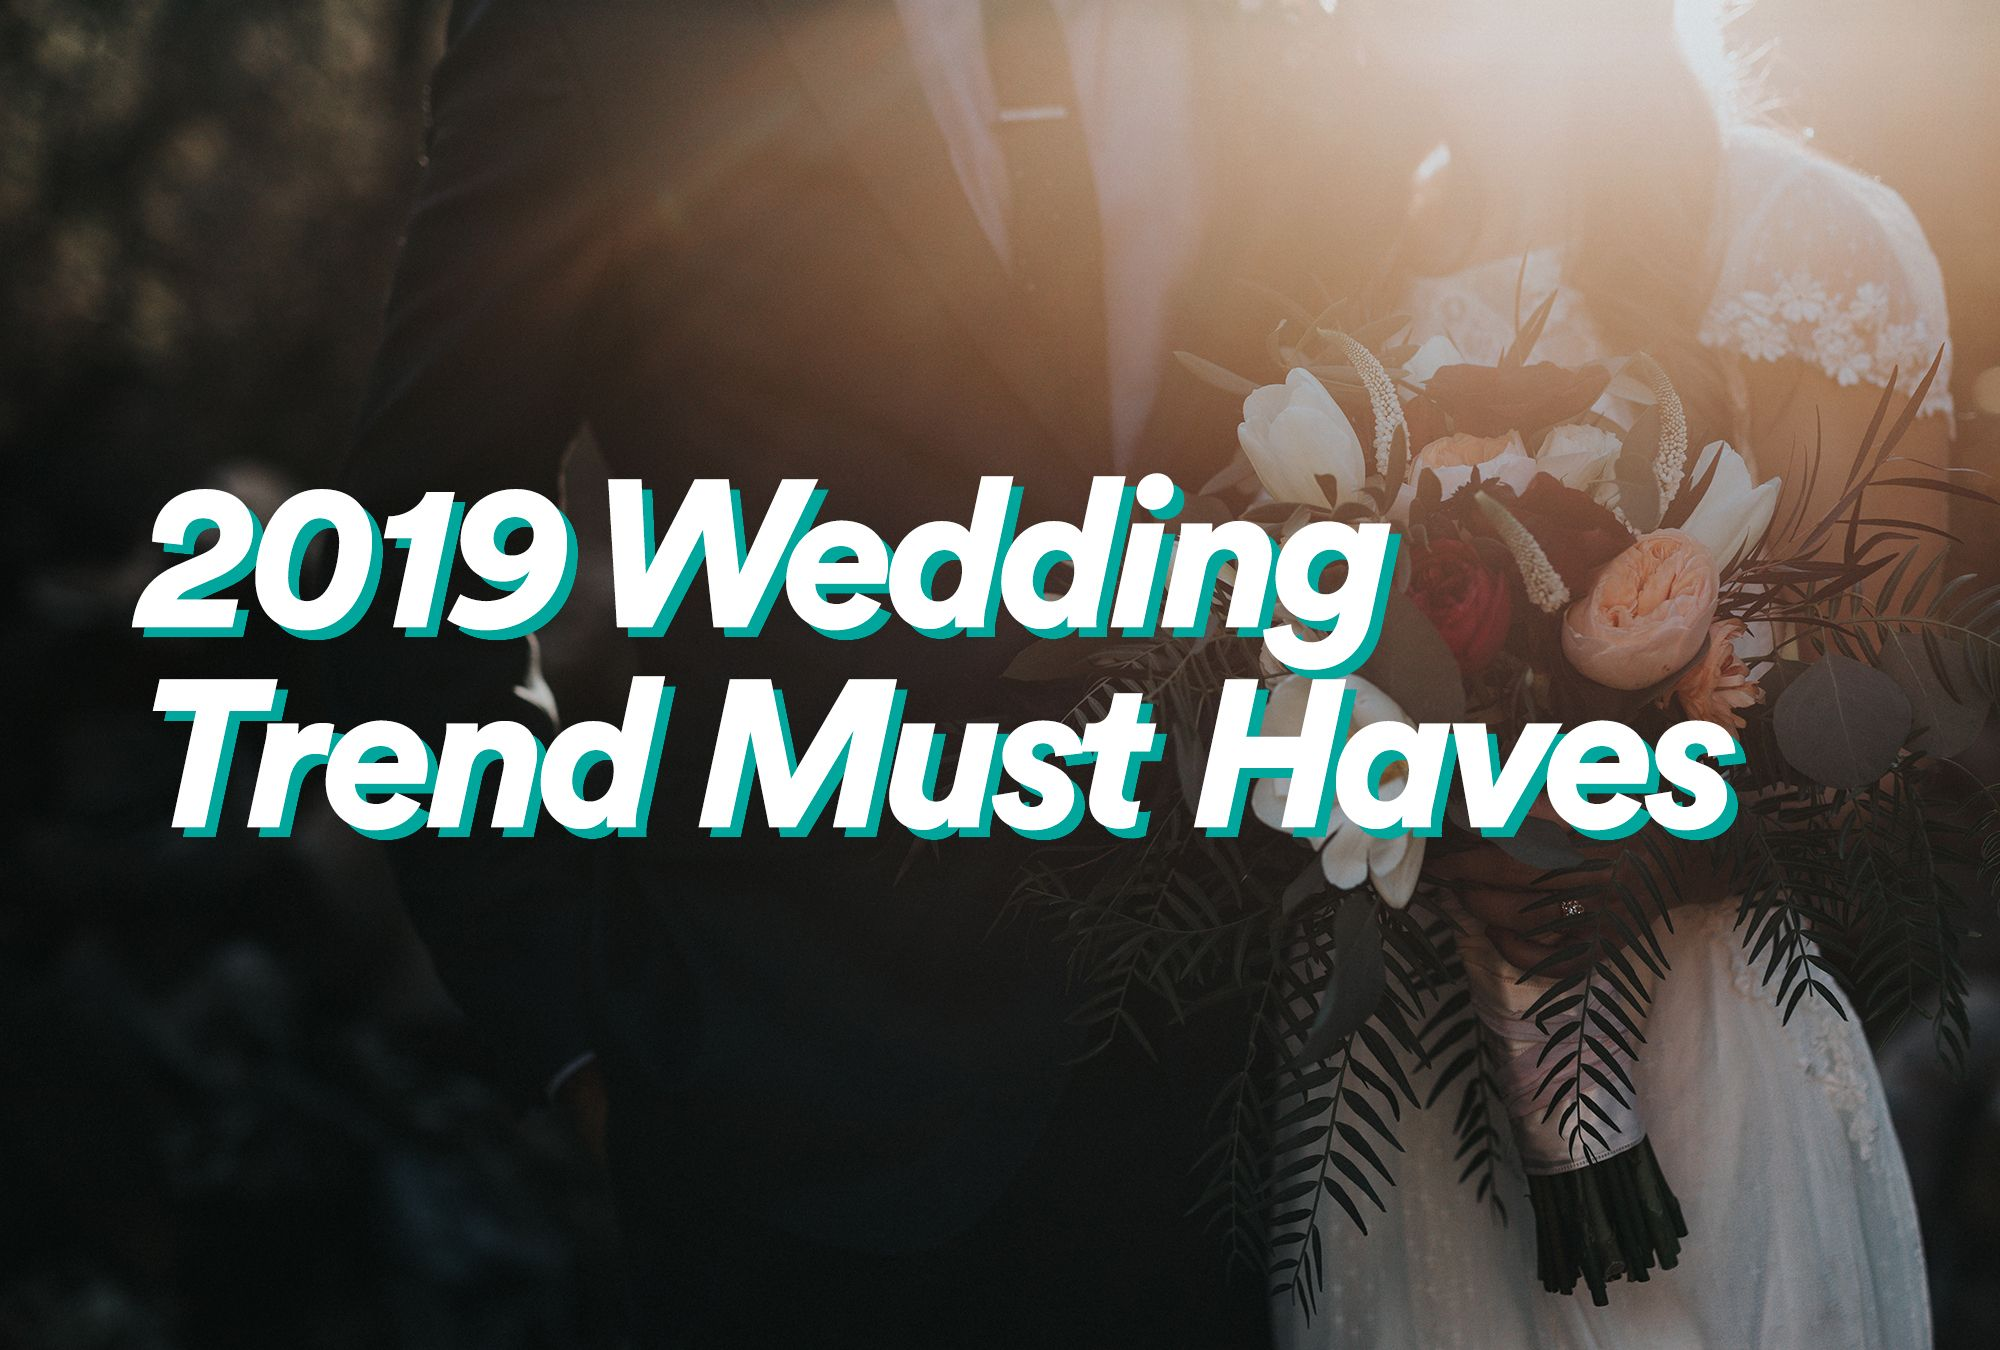 2019 Wedding Trend Must Haves